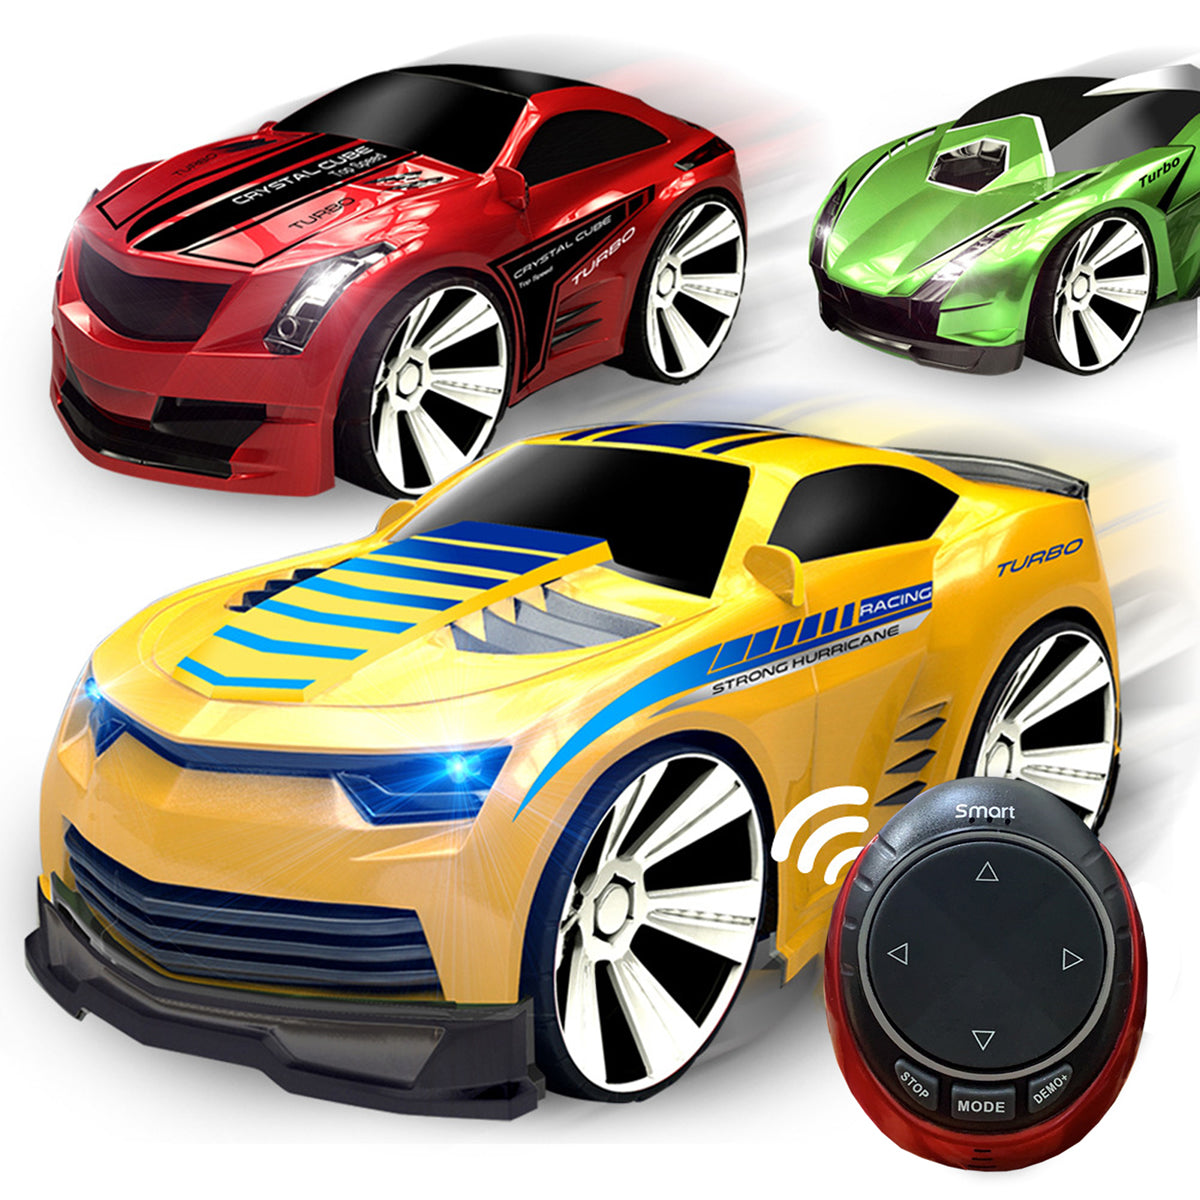 Turbo Racer Voice Activated Smart Remote Control Sports Car